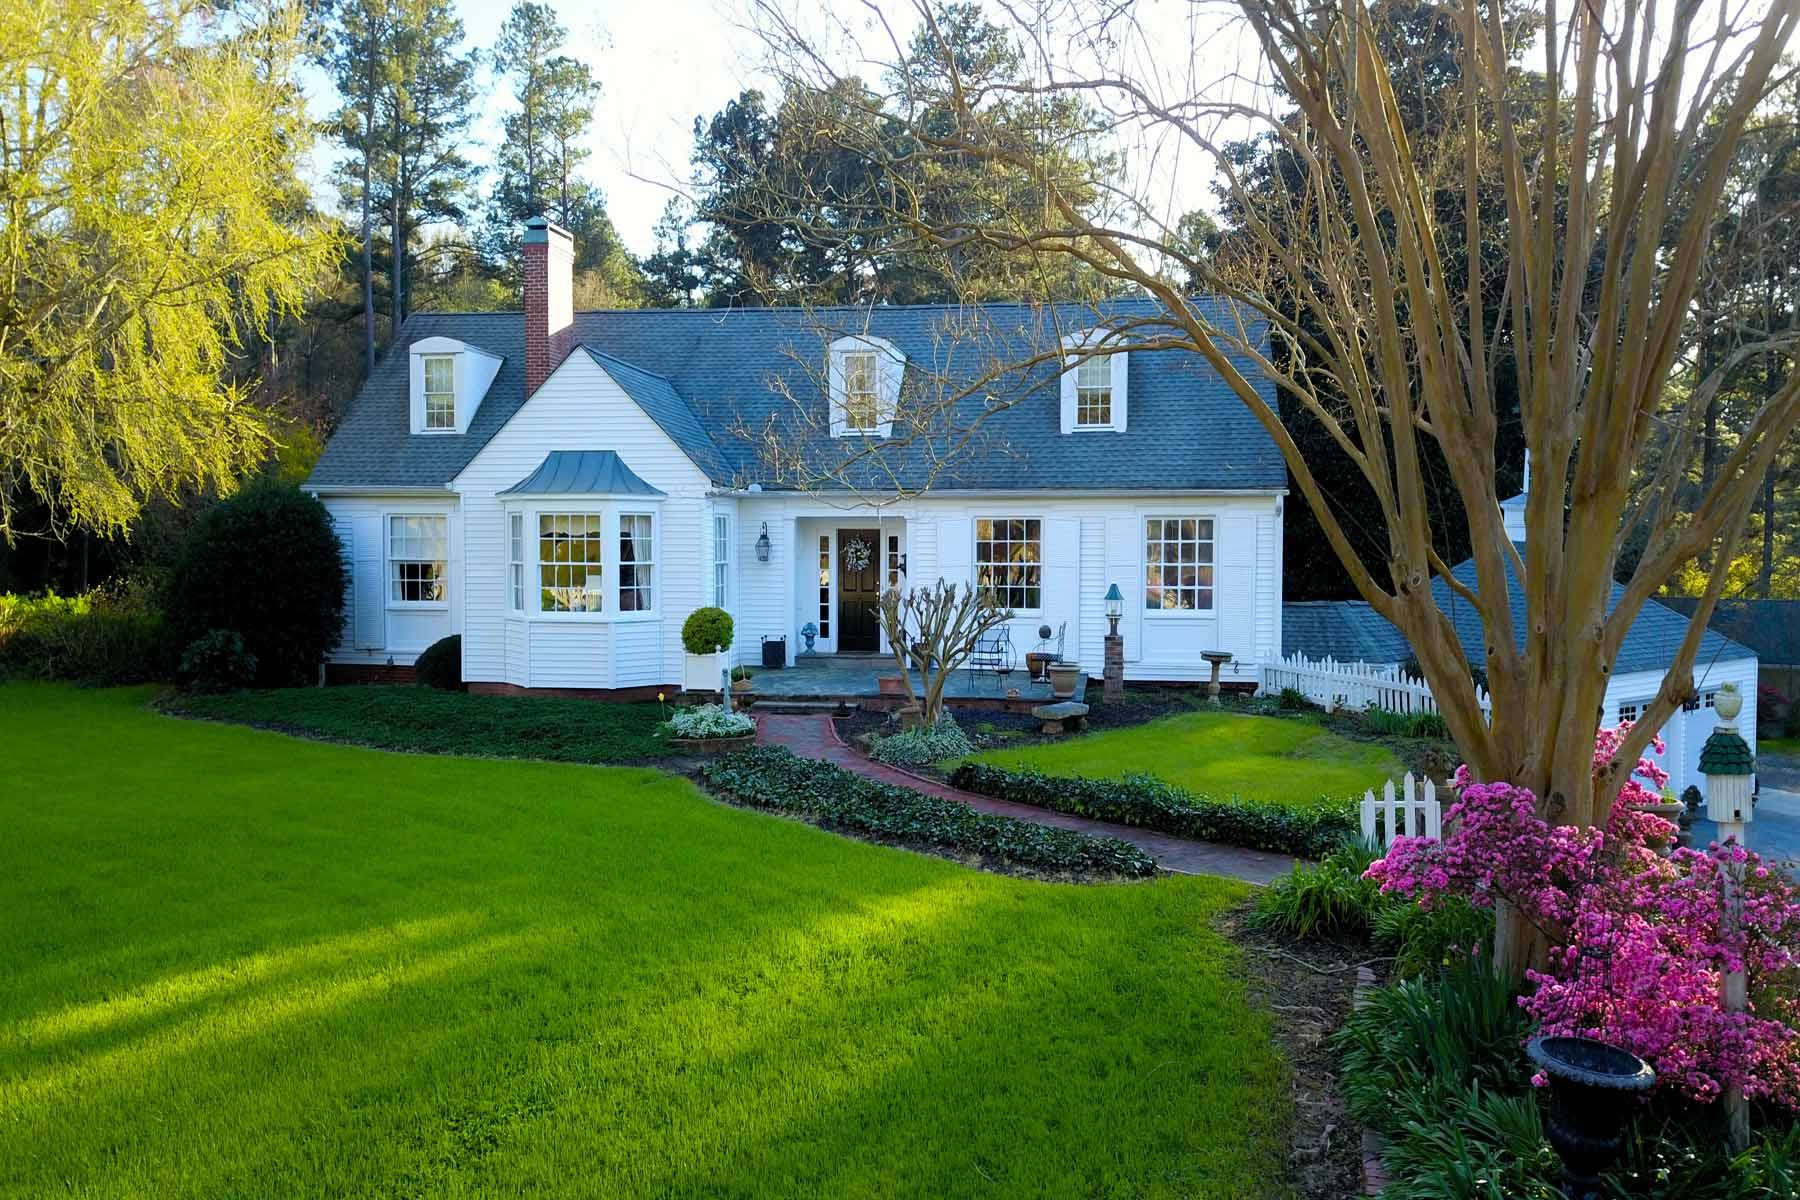 Single Family Home for Sale at Iconic White Picket Fence Estate With Guest House and Workshop 340 Roscoe Road Newnan, Georgia 30263 United States